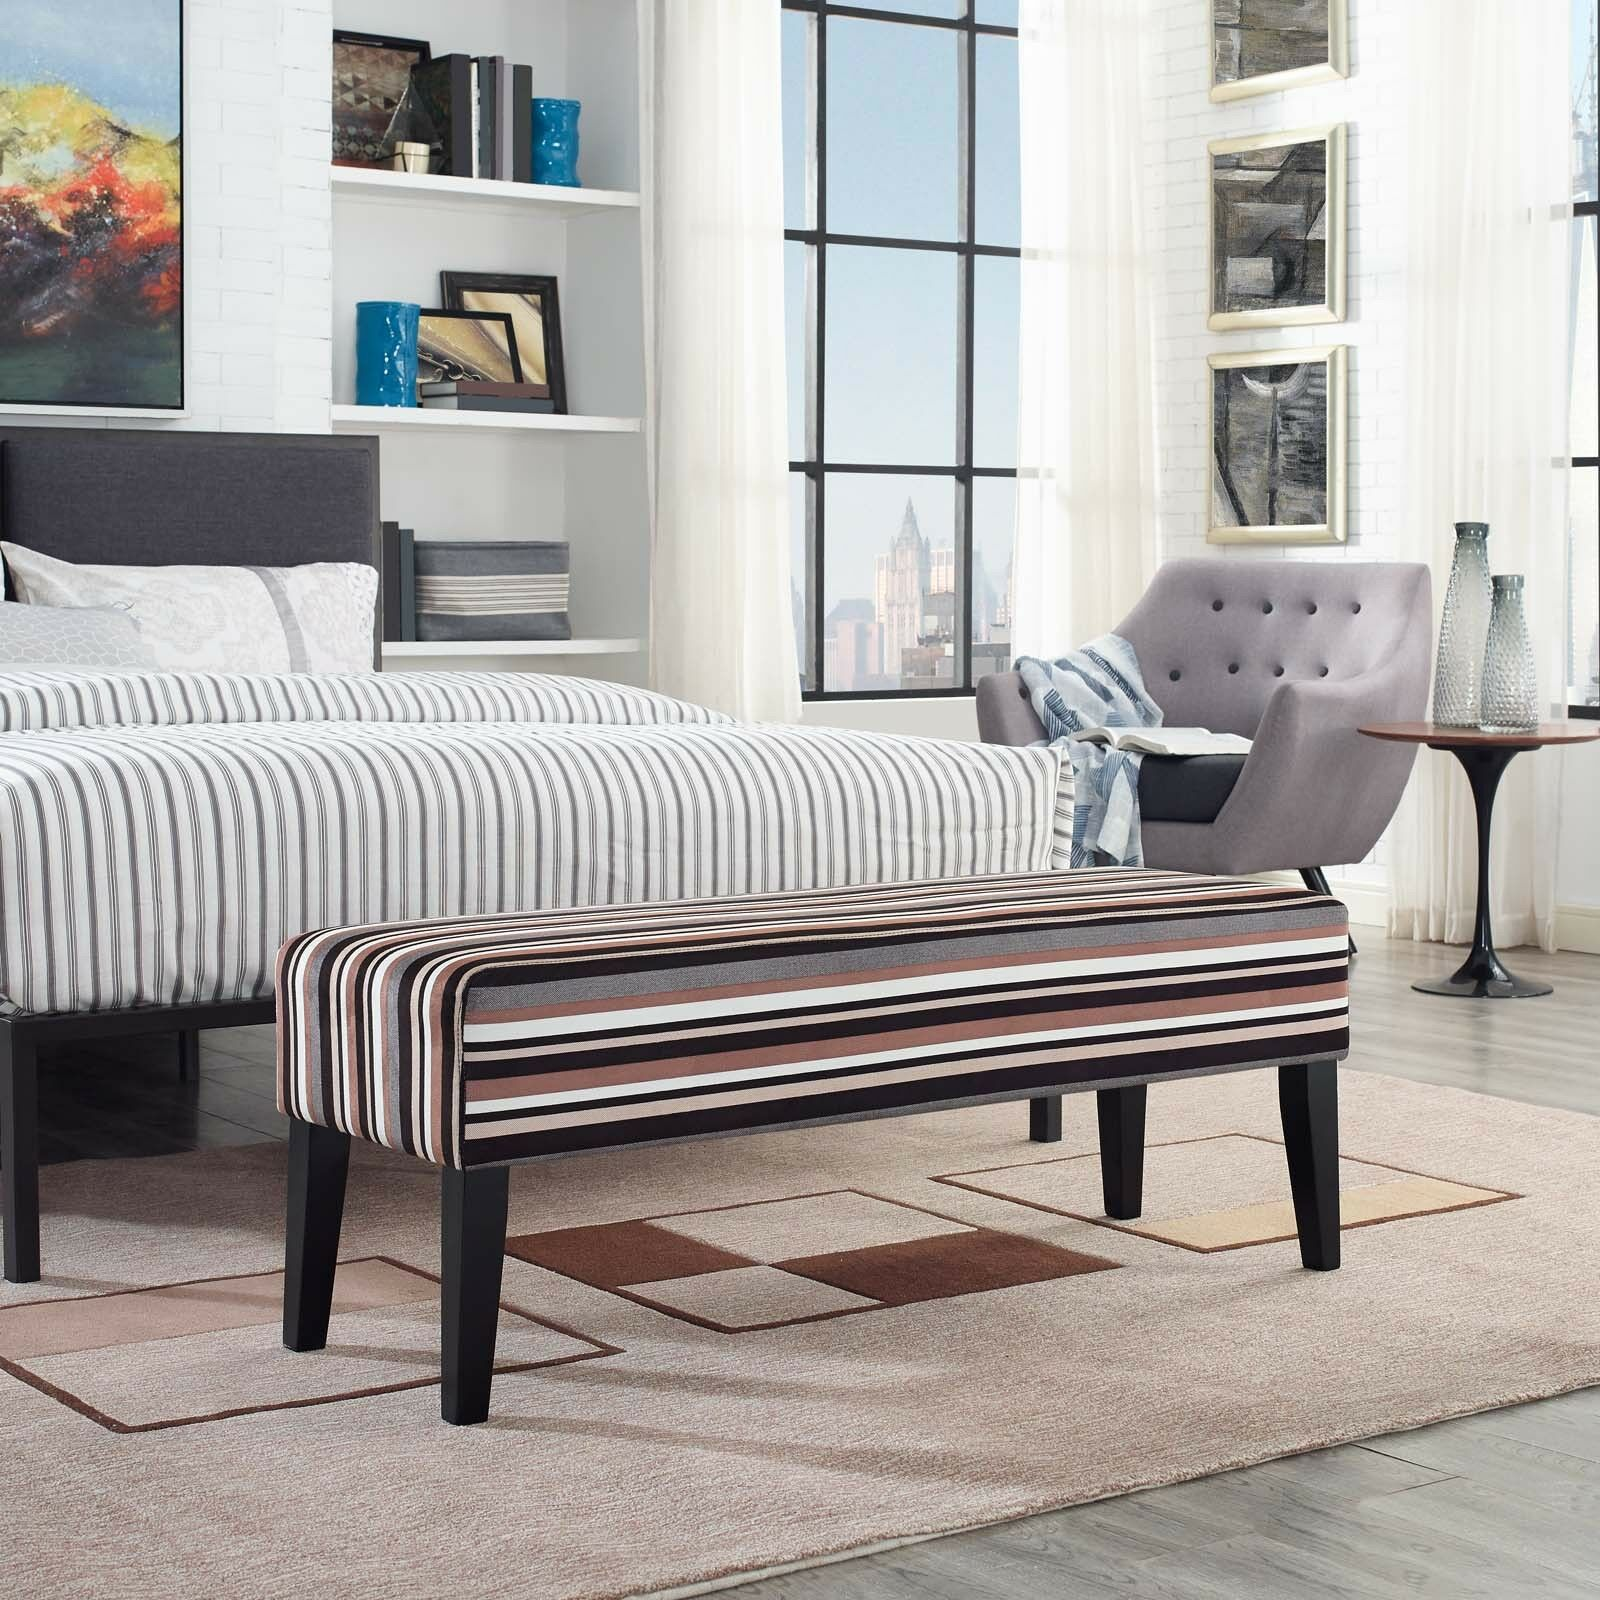 Details about Contemporary Modern Upholstered Fabric Bench in Stripe